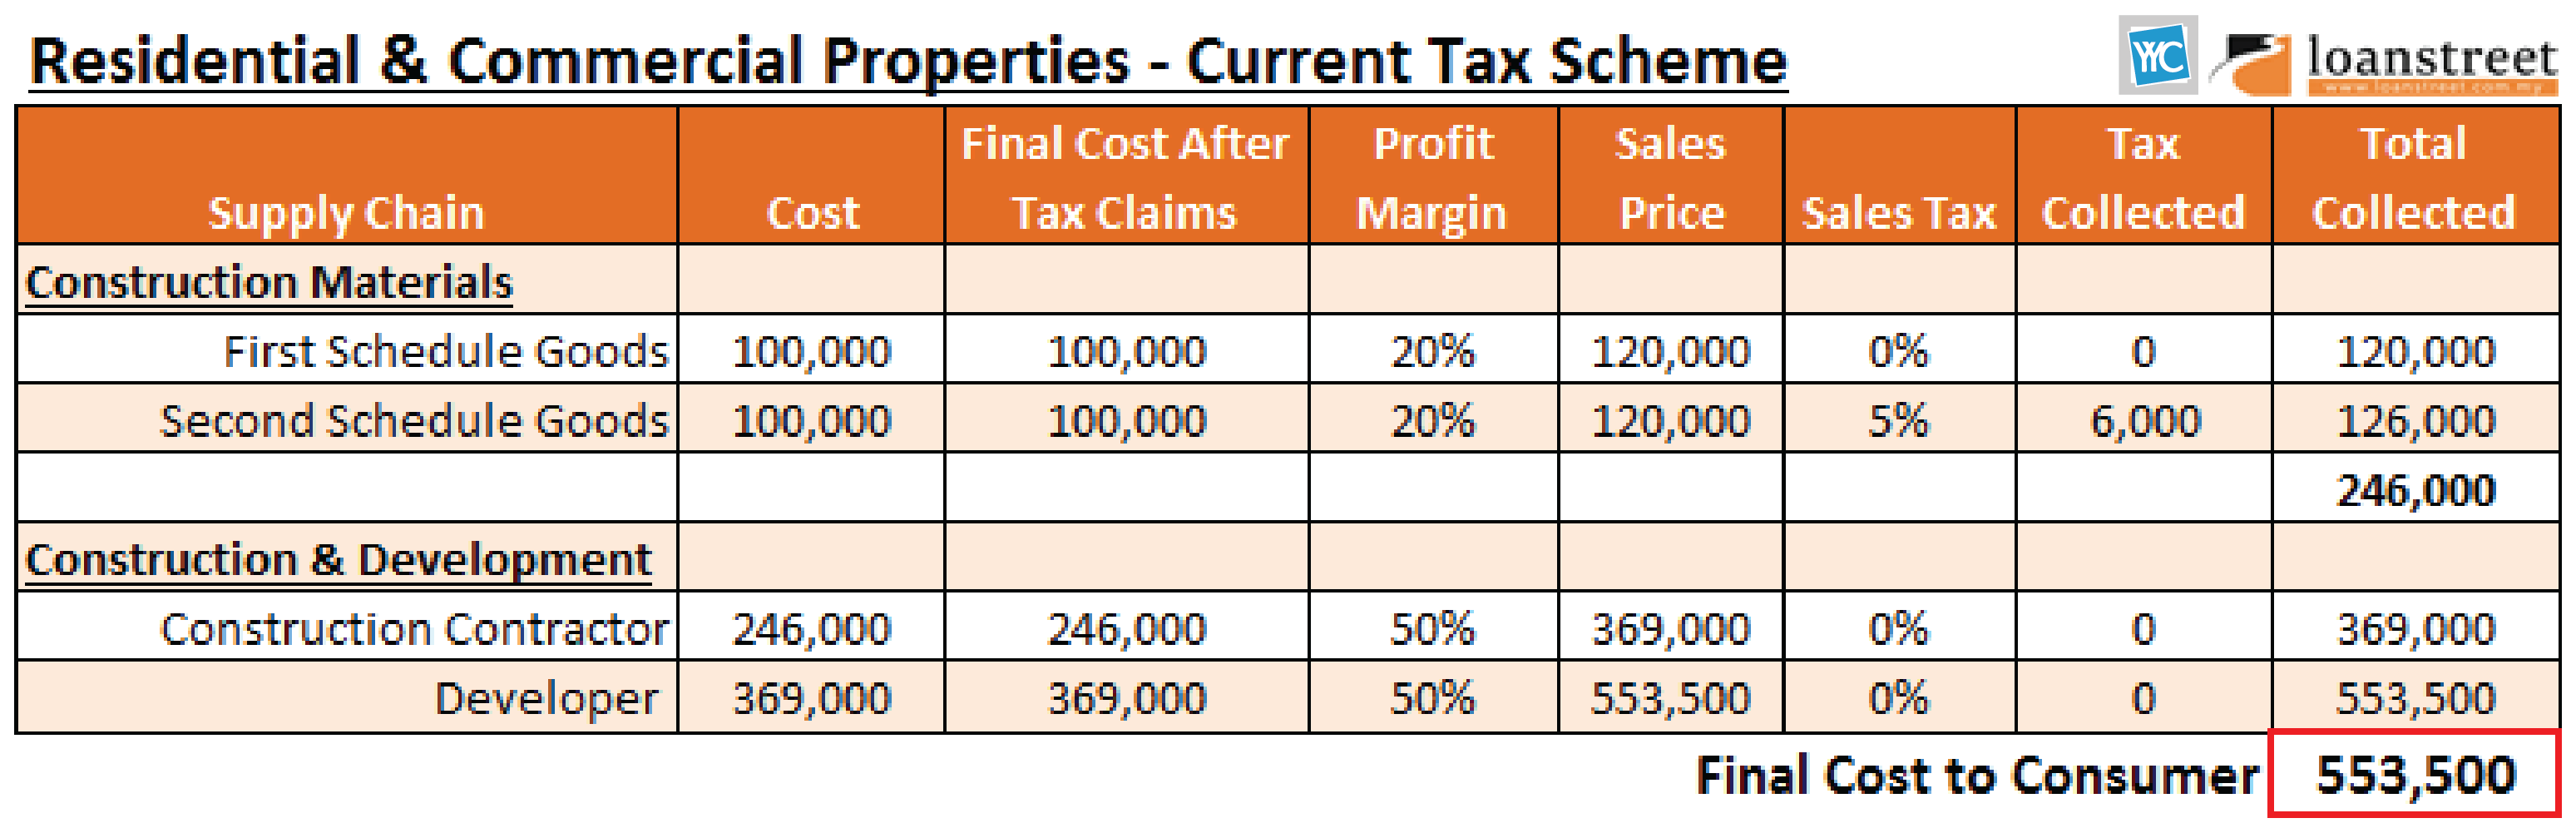 Residential & commercial properties - current tax scheme